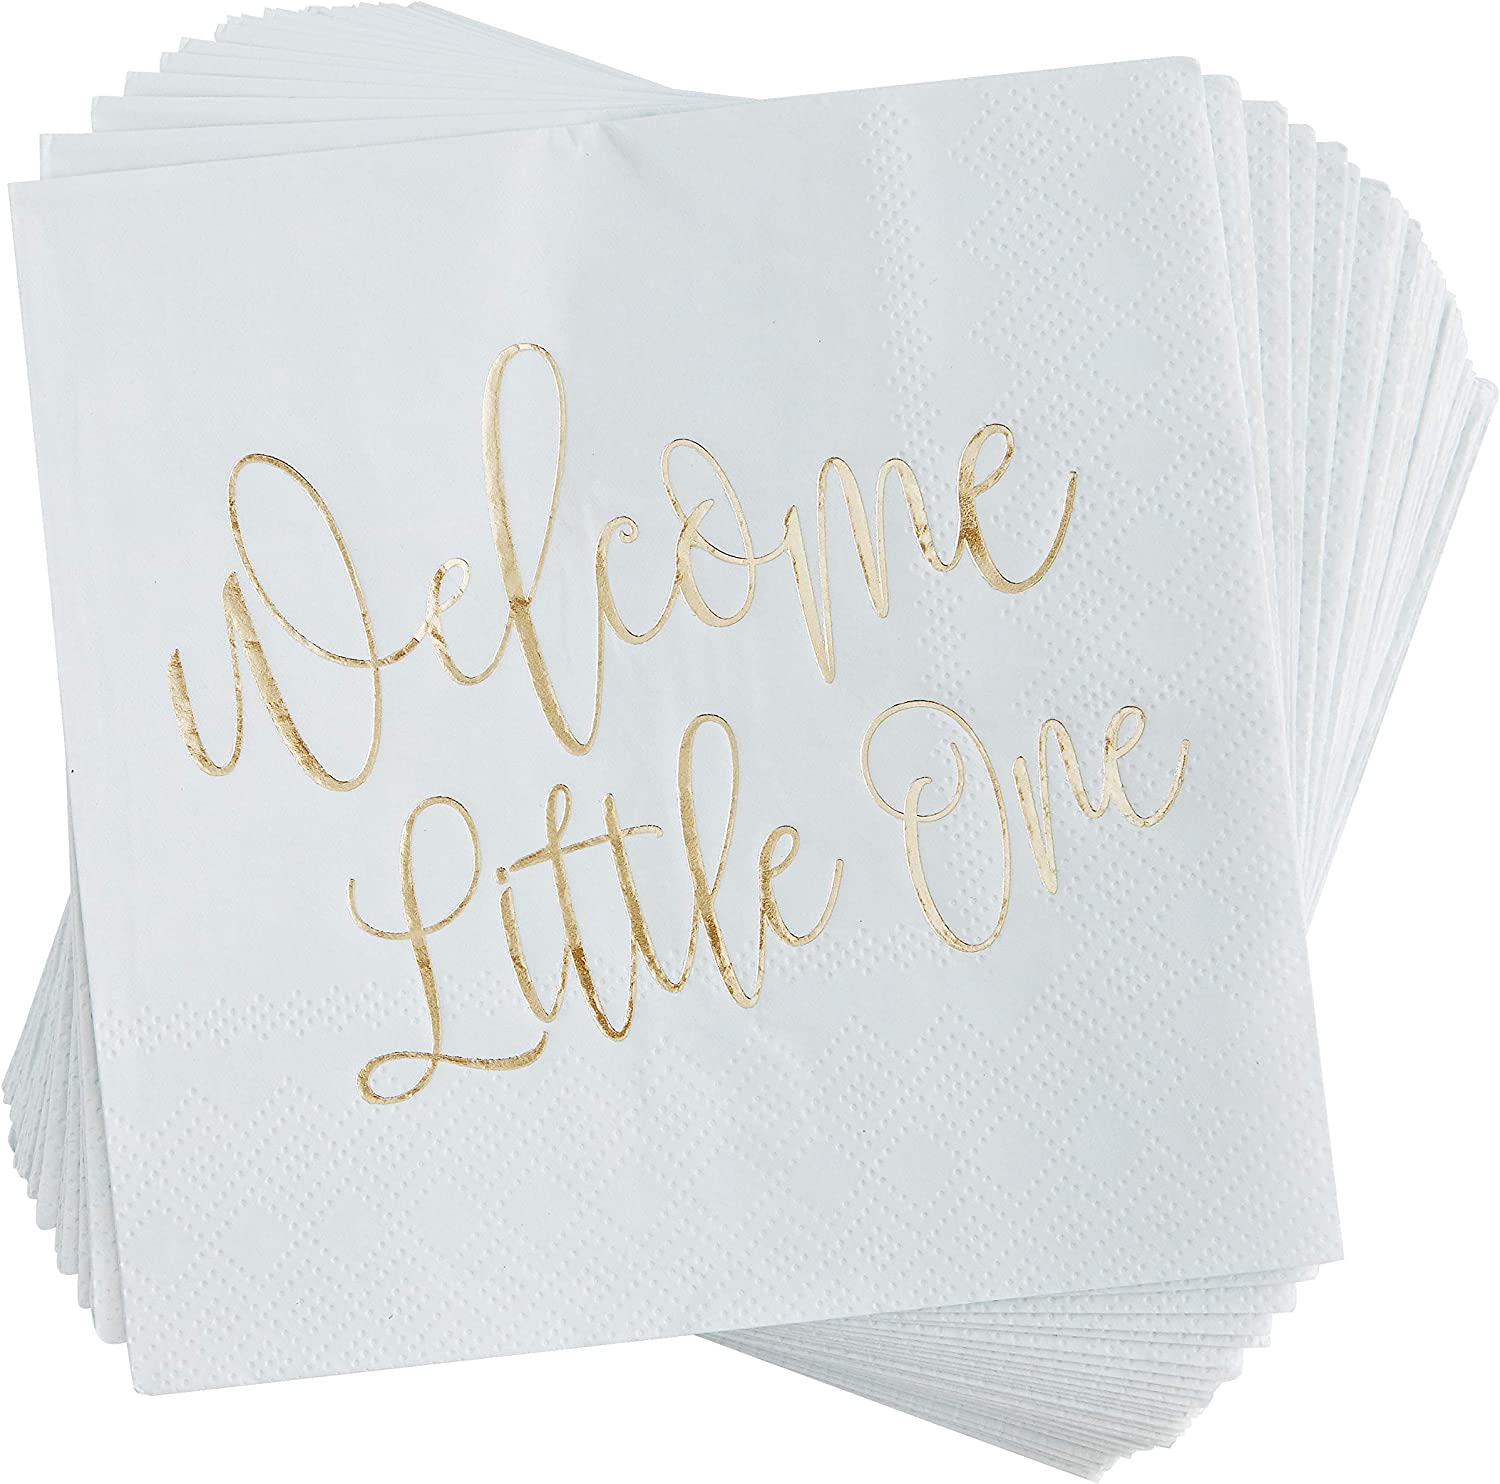 Blue Panda Baby Shower Cocktail Napkins, Welcome Little One (50 Pack), Light Blue with Gold Foil